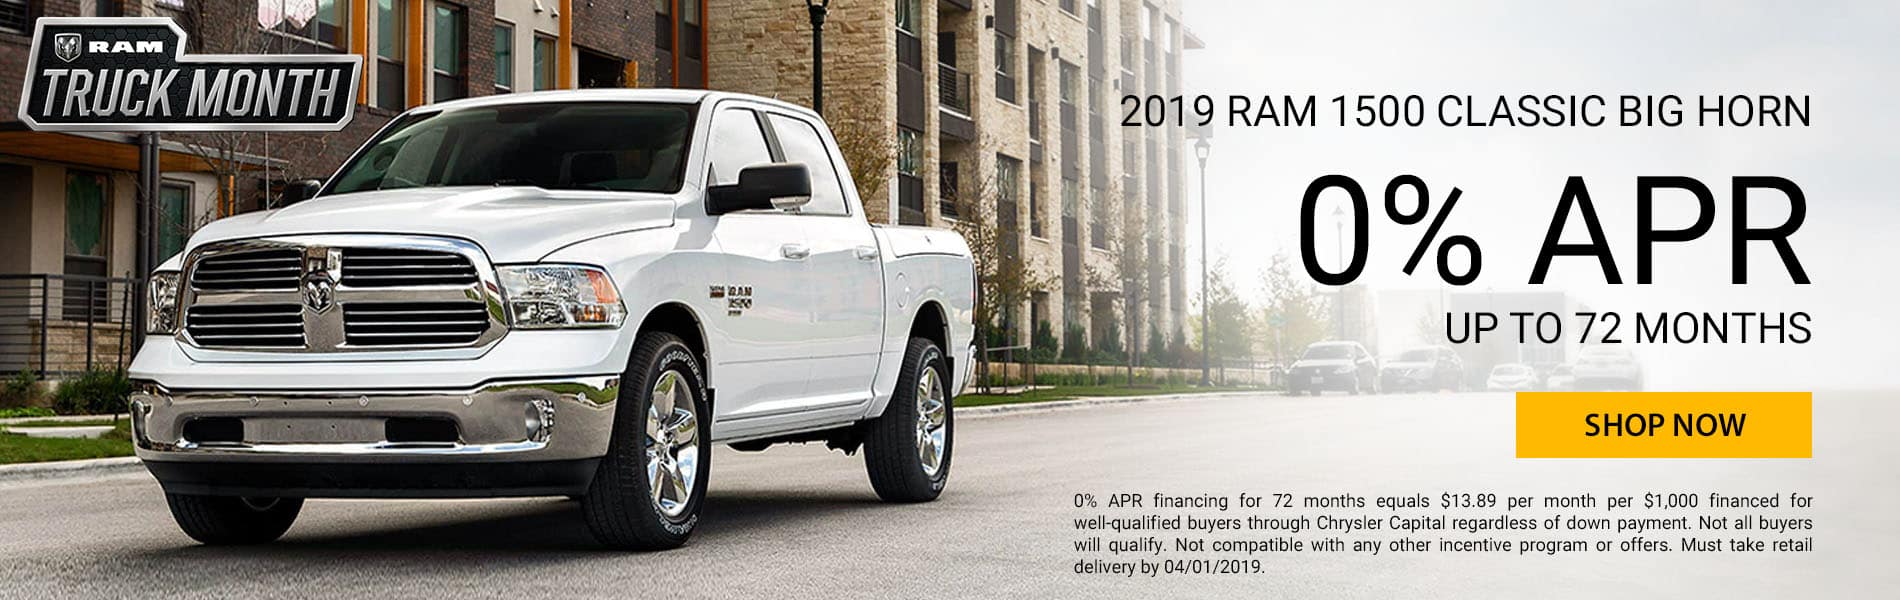 0% APR financing for up to 72 months on all 2019 RAM 1500 Classic Big Horns.